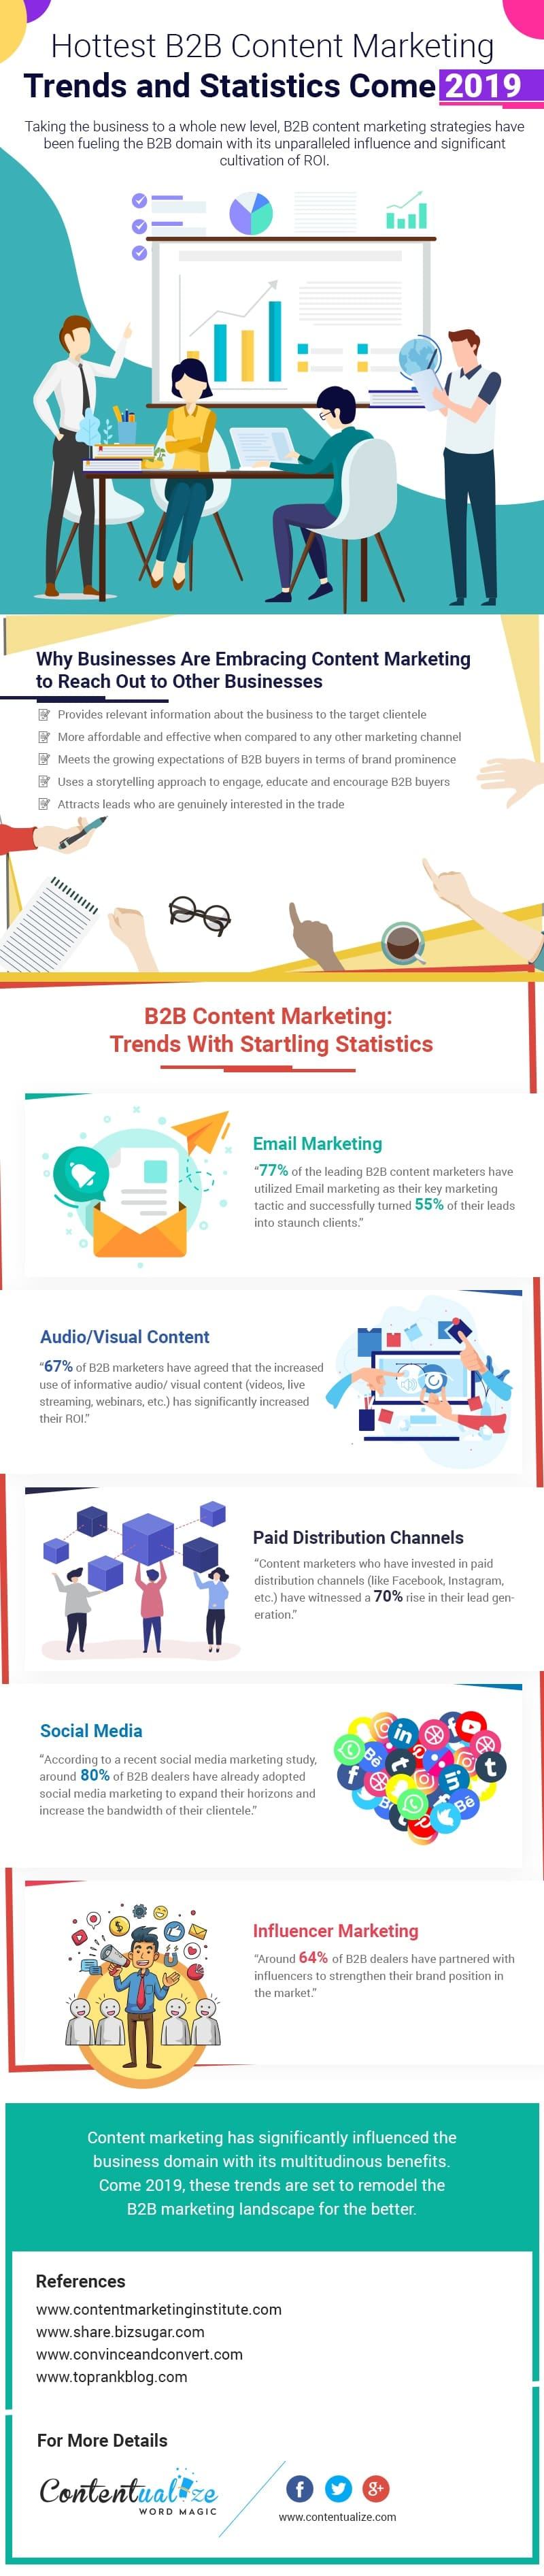 Latest B2B Content Marketing Trends and Statistics